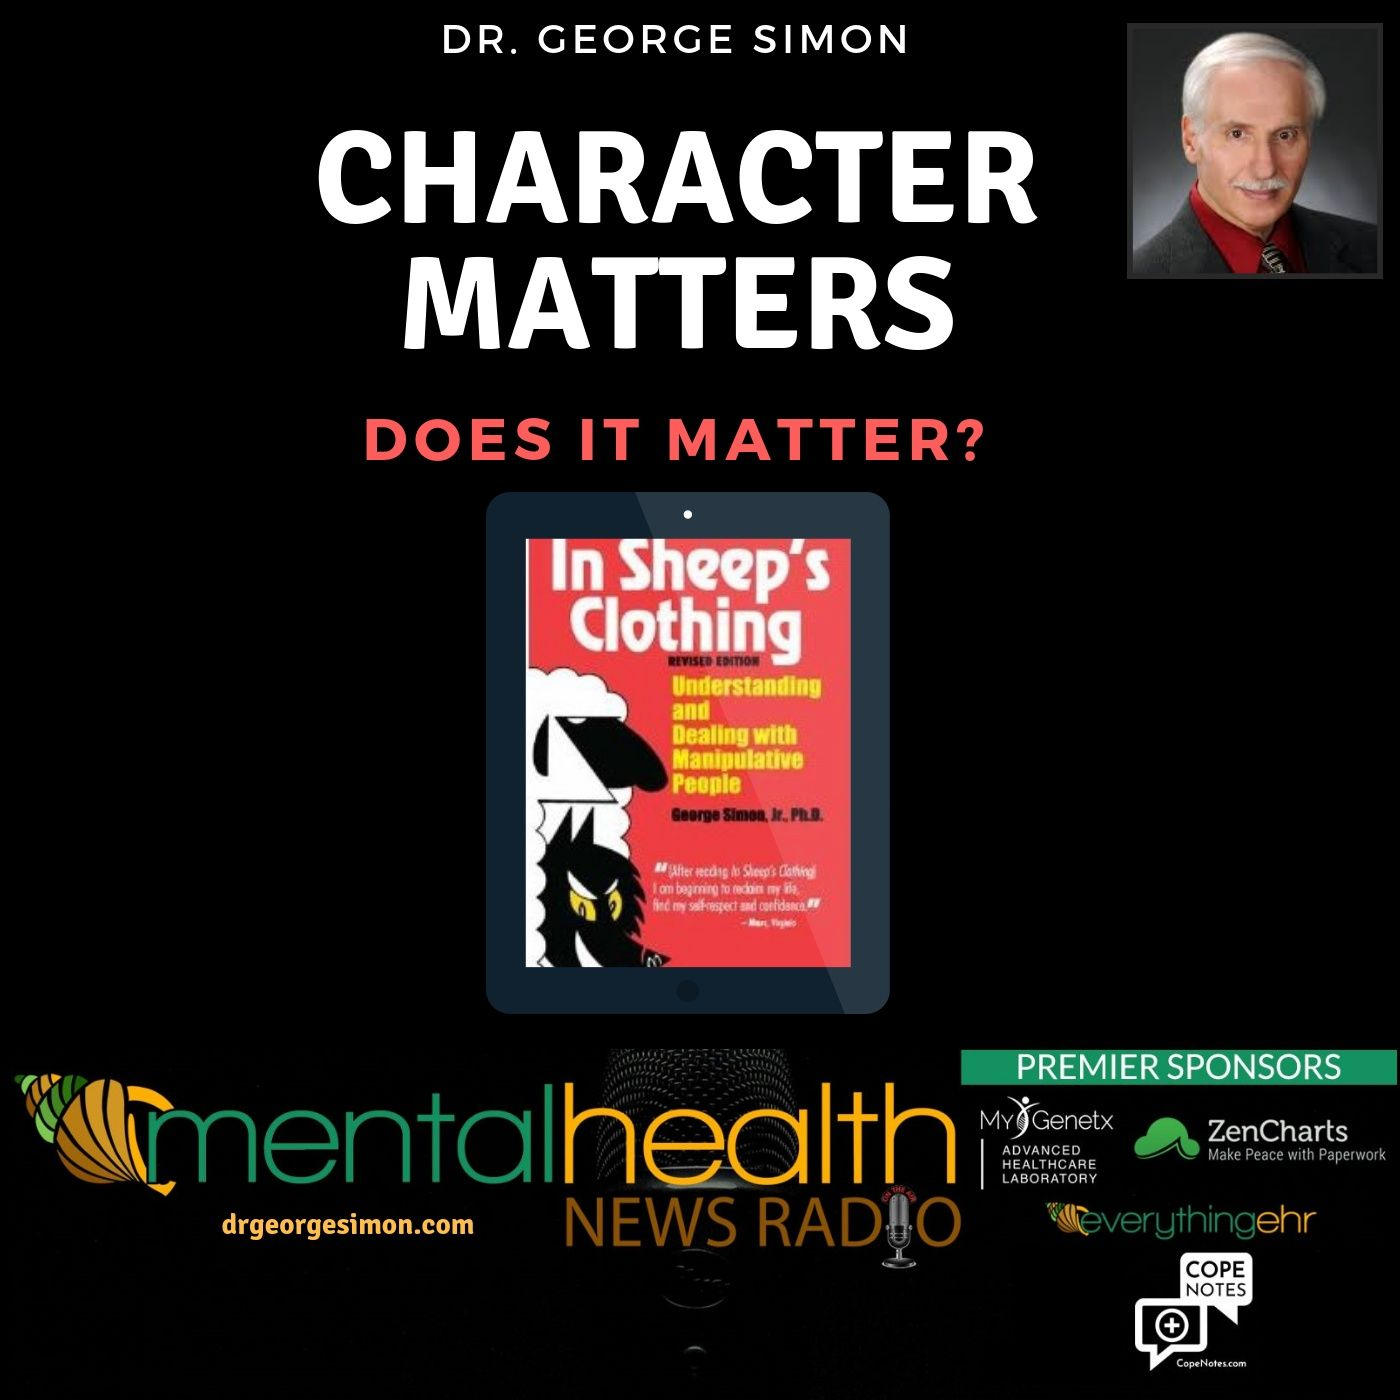 Mental Health News Radio - Character Matters with Dr. George Simon: Does it Matter?